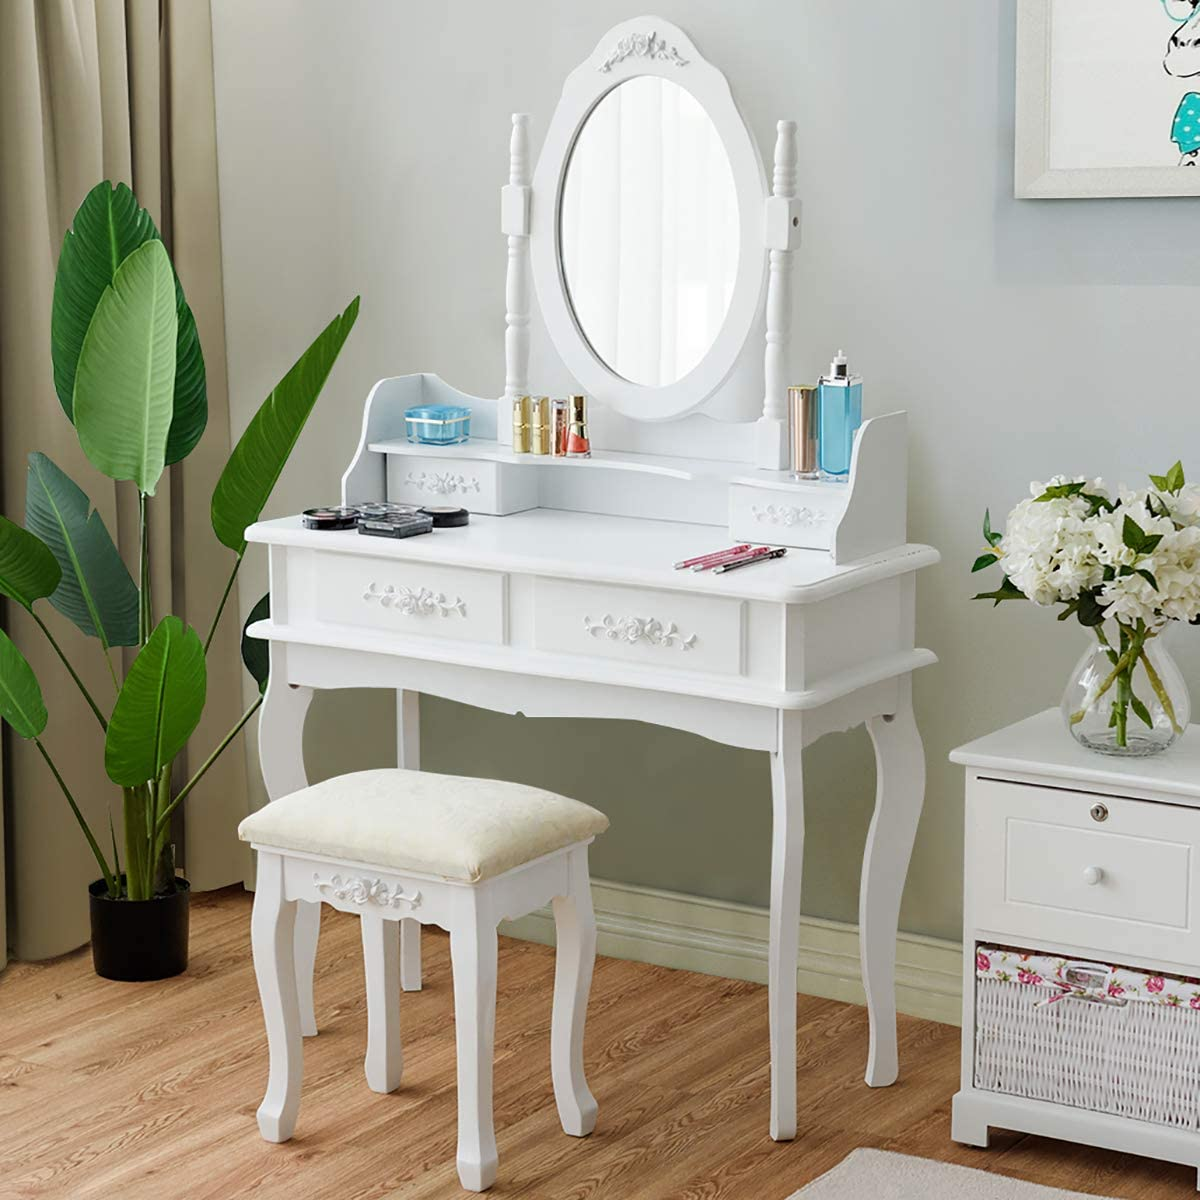 CHARMAID Makeup Table with Rotatable Mirror and 4 Drawer, Princess Girls Women Dressing Table with Cushioned Stool, Vanity Set with Oval Mirror White